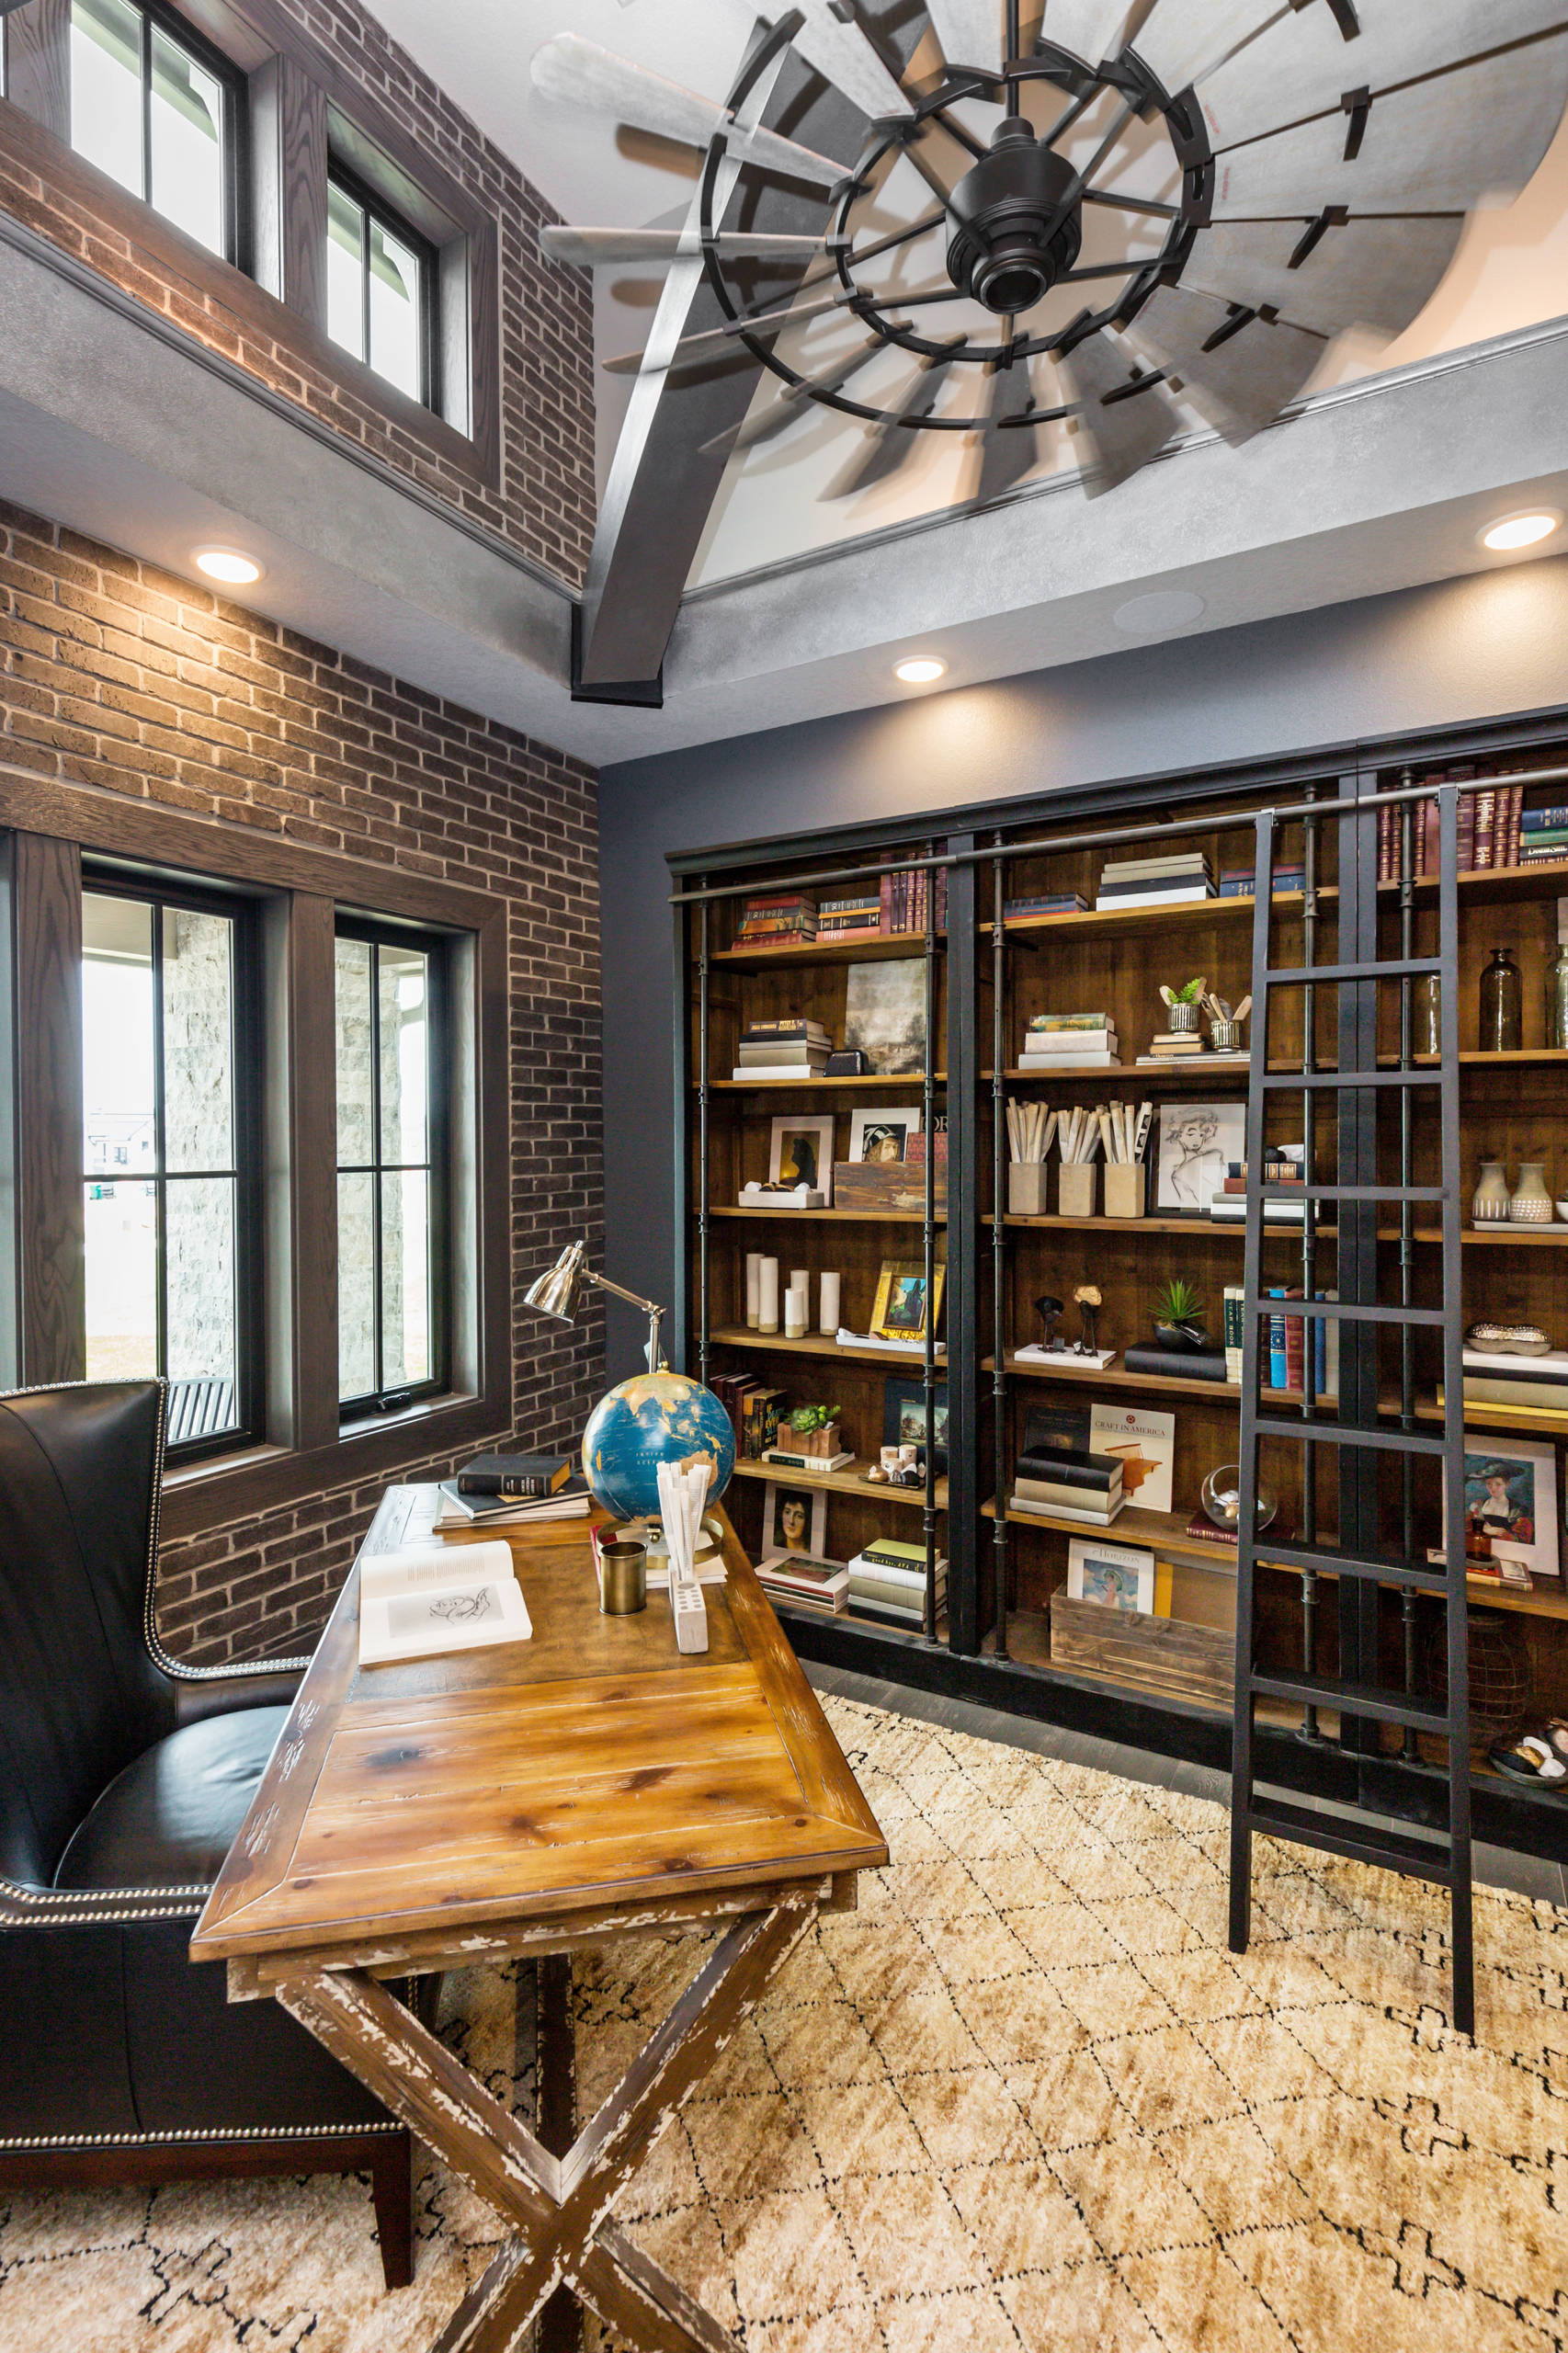 75 Beautiful Industrial Home Office Pictures Ideas February 2021 Houzz